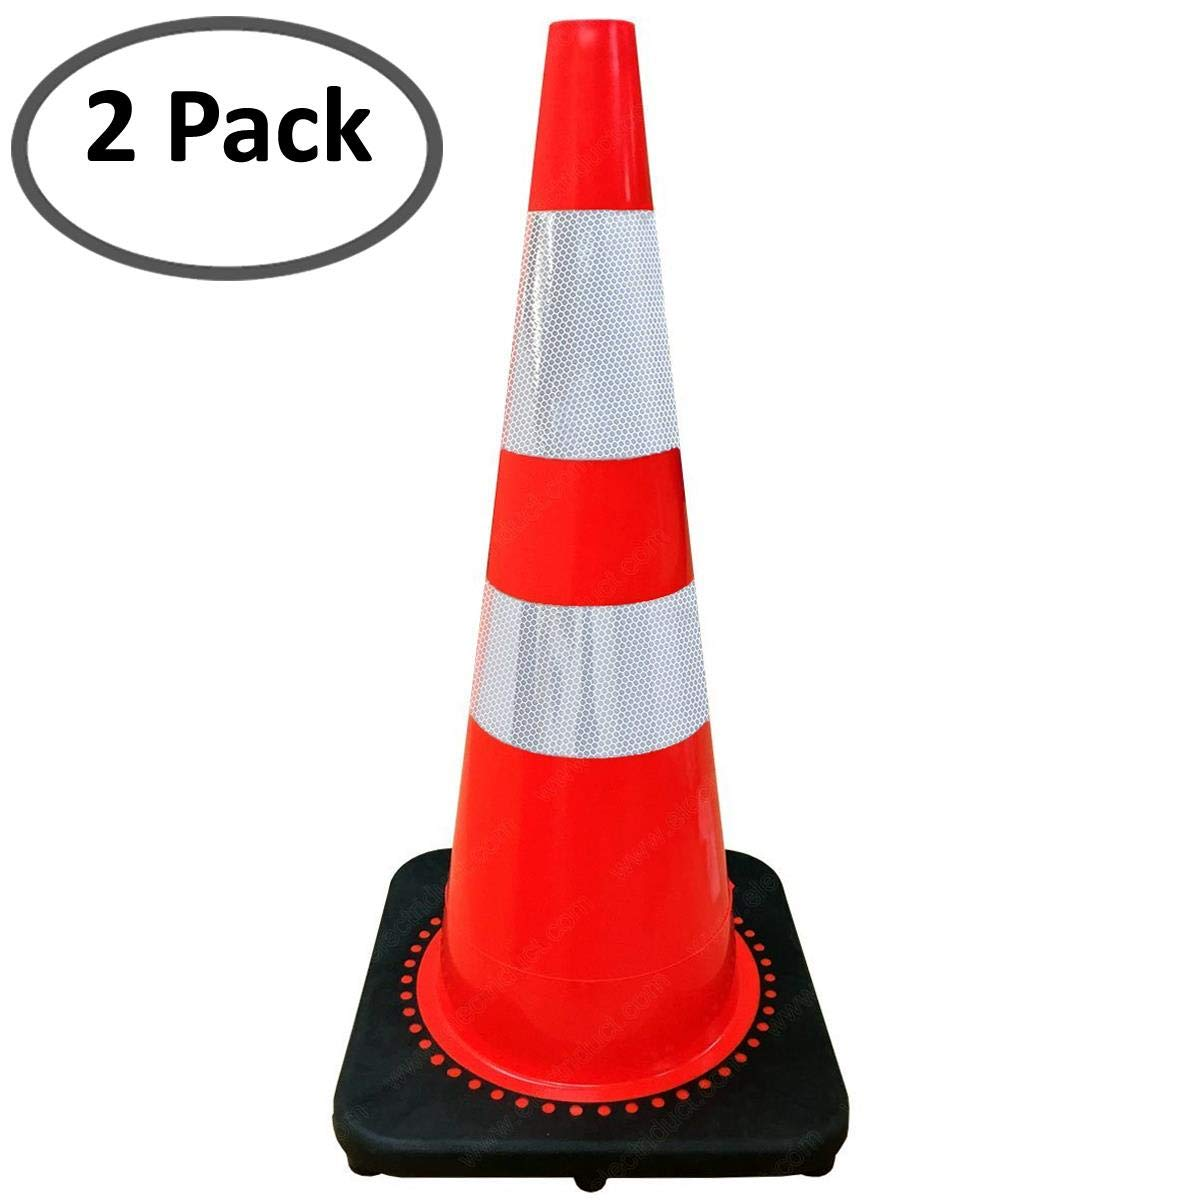 28'' Traffic Cone with Reflective Collar - Bright Orange/Black Base - 2 Pack